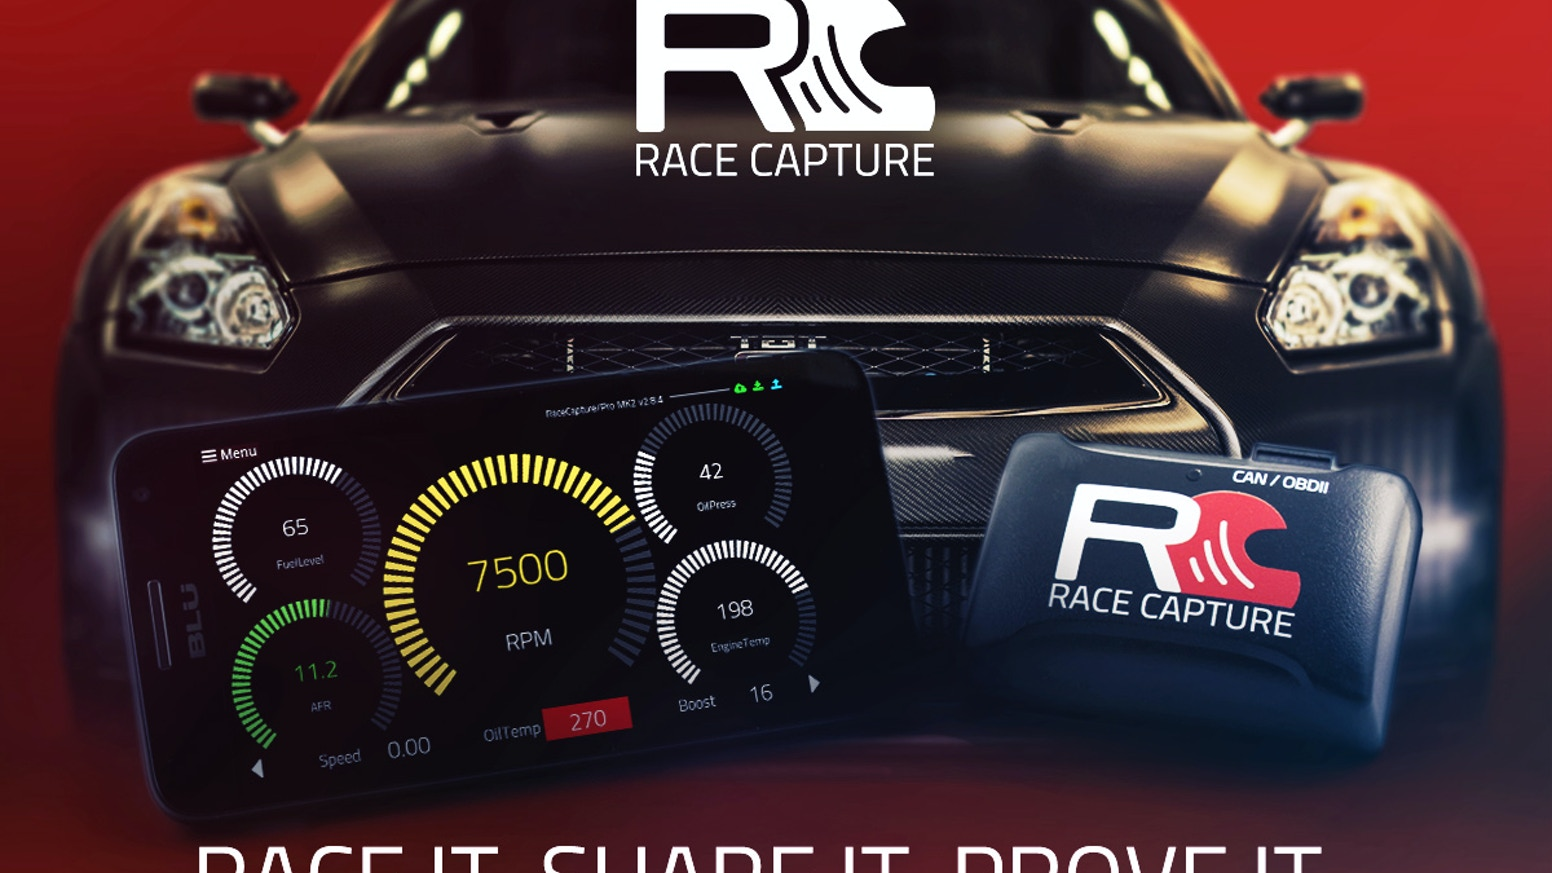 RaceCapture brings motorsports to the connected car: Share track days, autocross, drift and drag racing with your friends in real time!